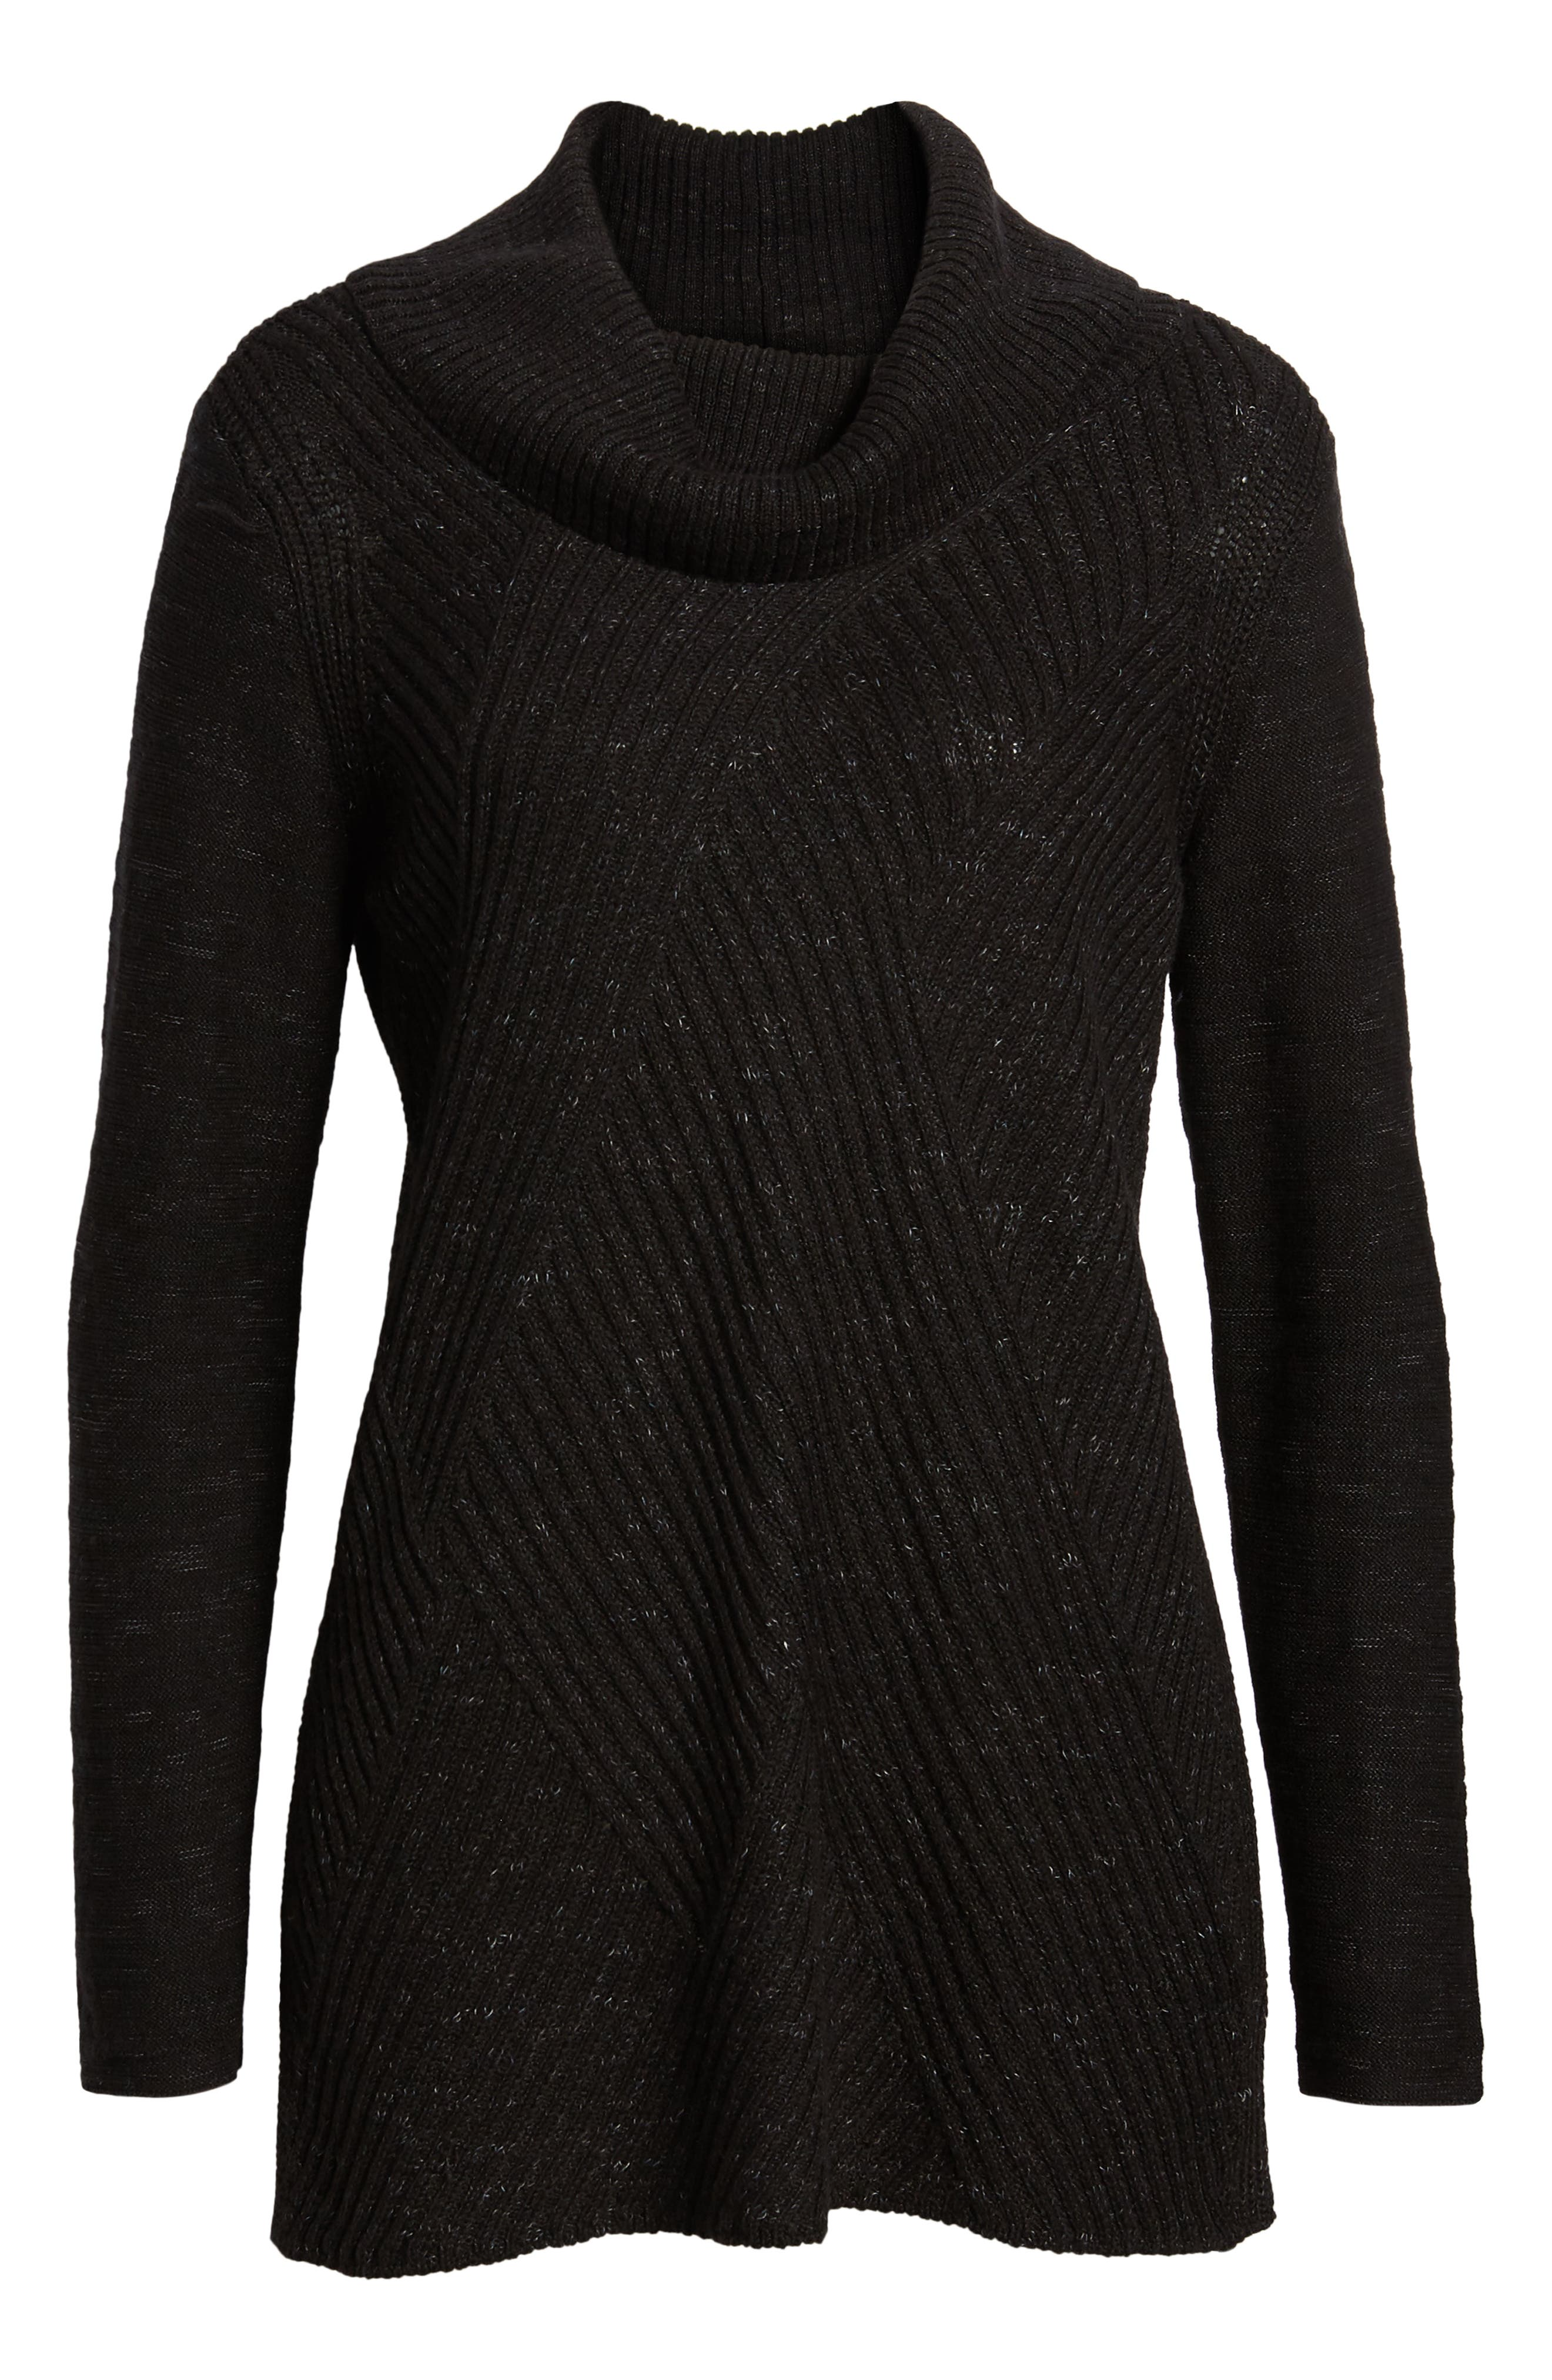 North Star Sweater,                             Alternate thumbnail 6, color,                             004